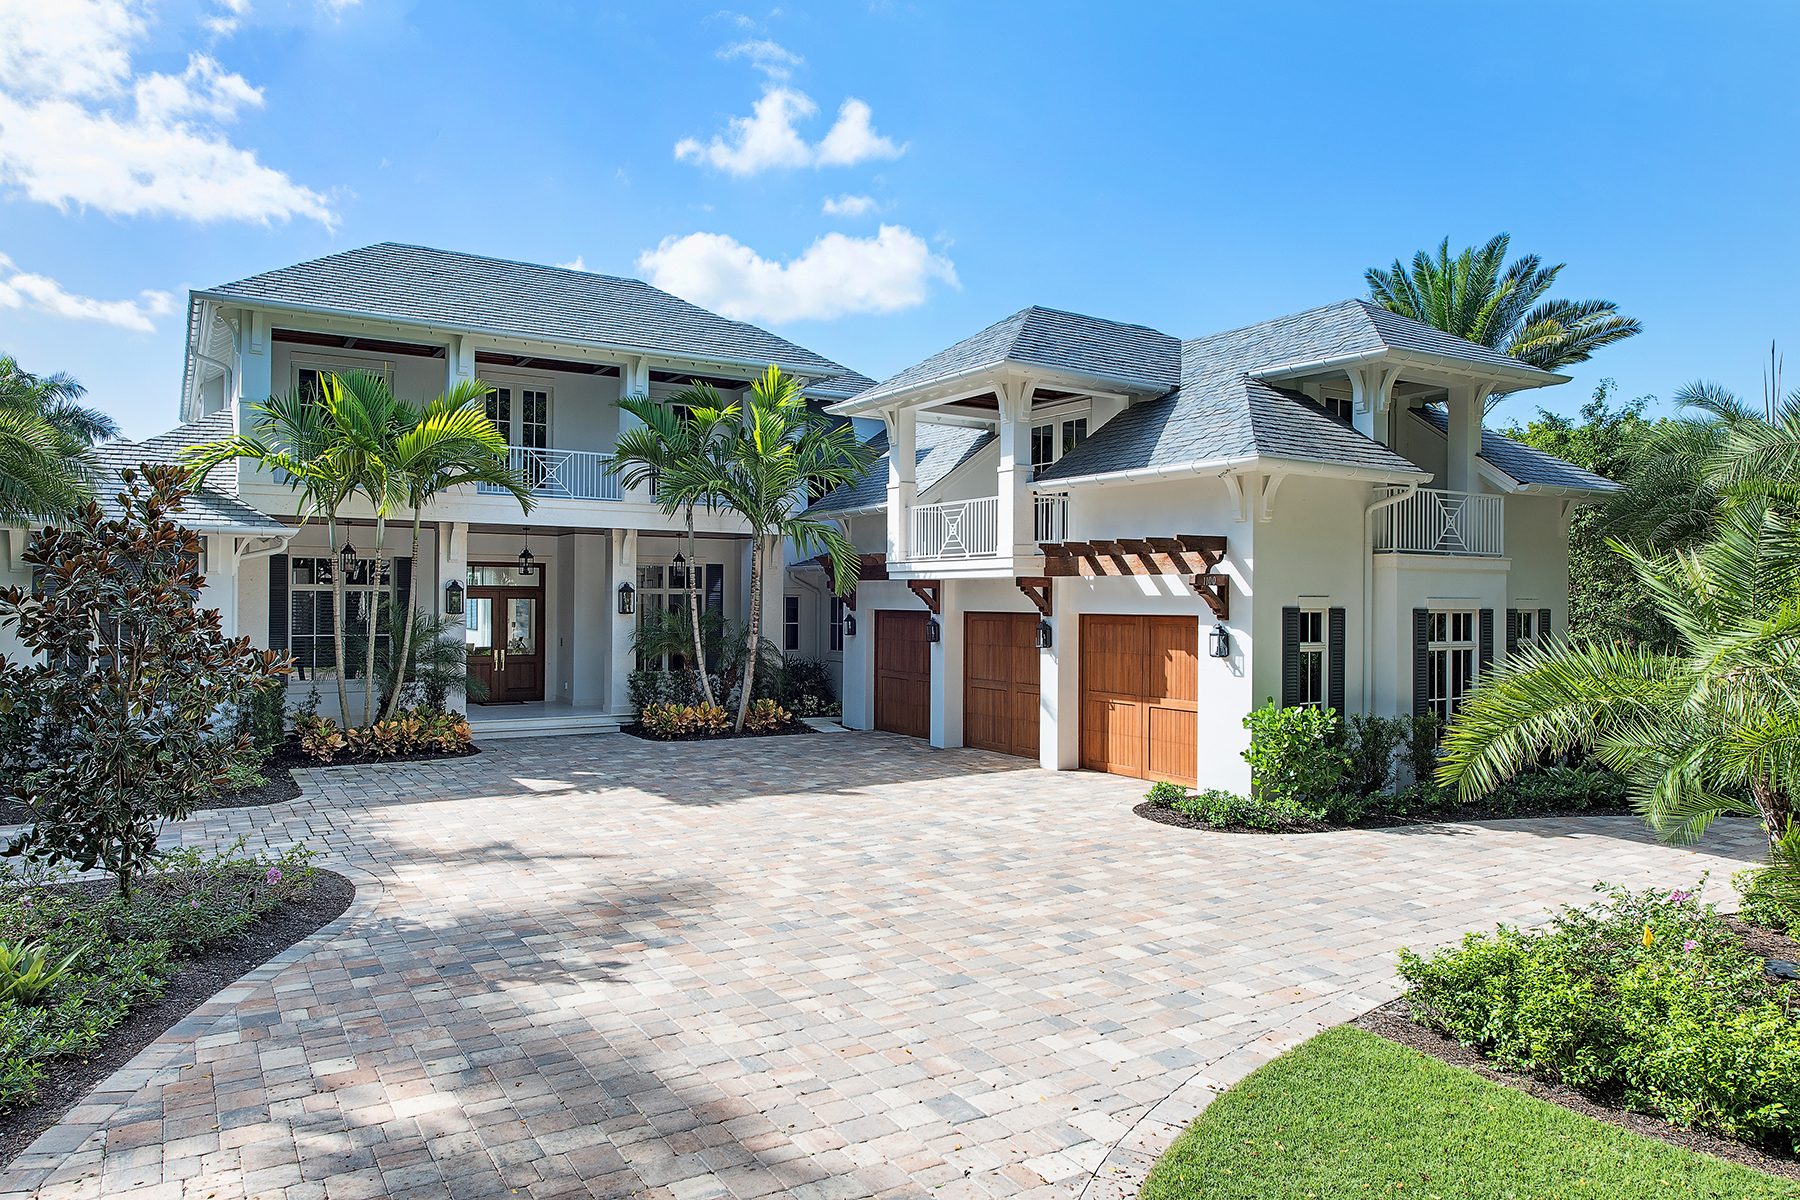 Single Family Home for Sale at PORT ROYAL 1100 Galleon Dr, Naples, Florida 34102 United States